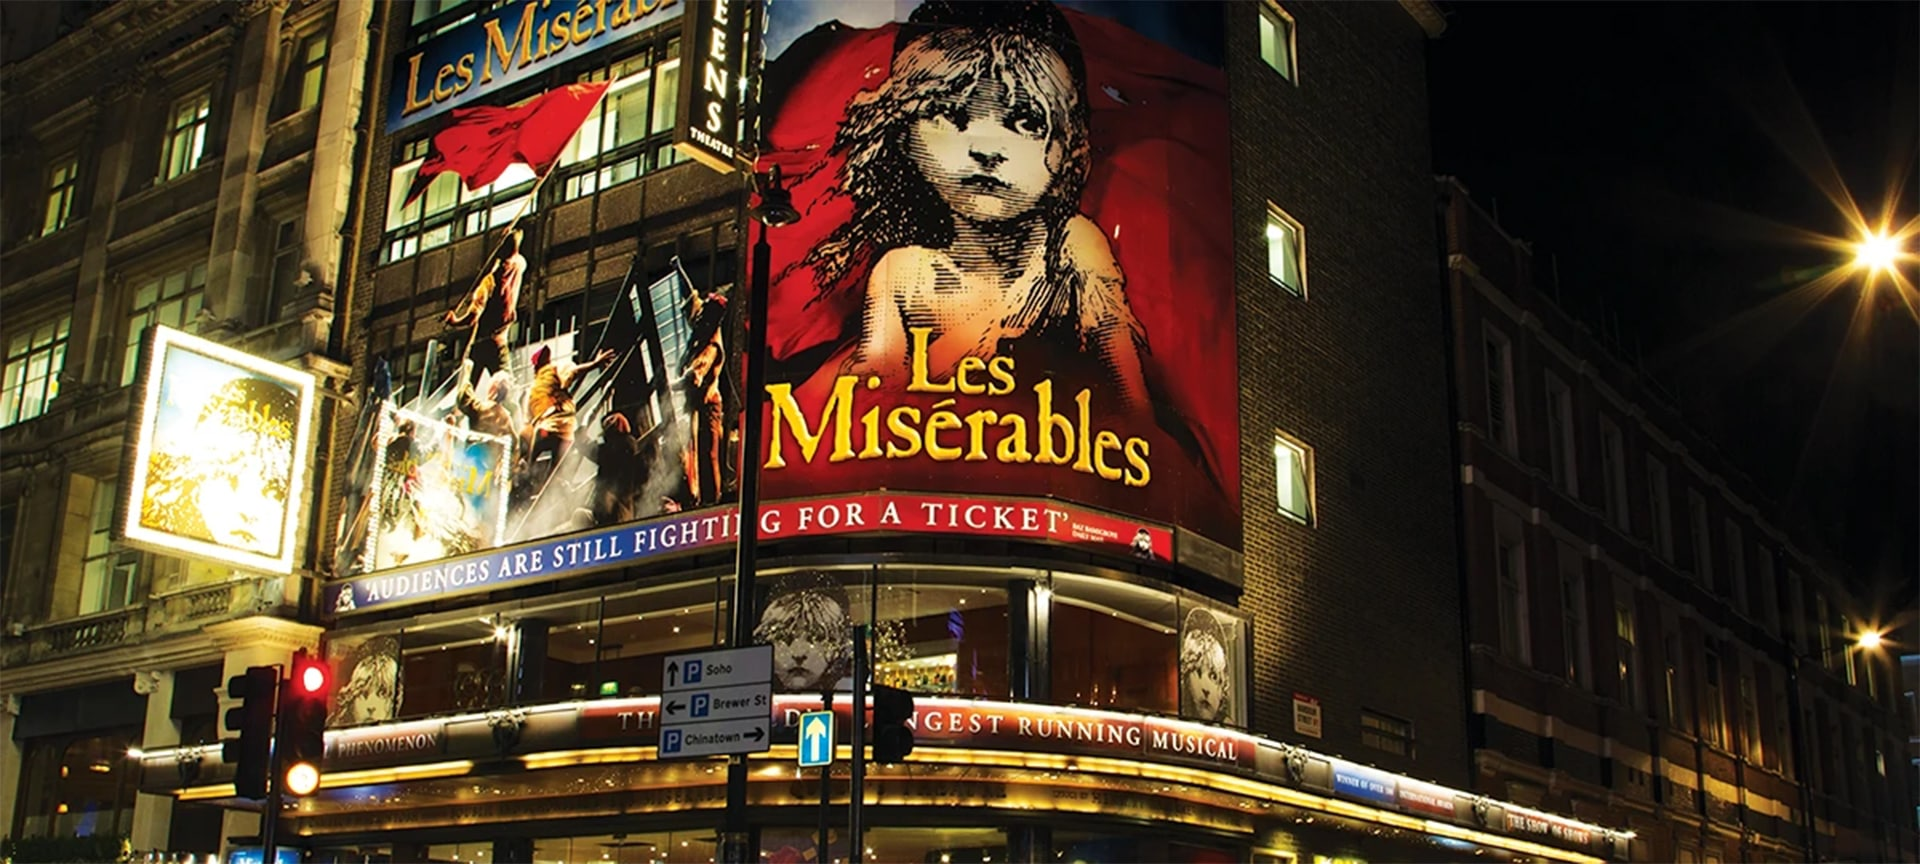 Running in the West End for a whopping 32 years and counting, Les Miserables is the longest-running musical in the West End (and the second longest-runner in the world).